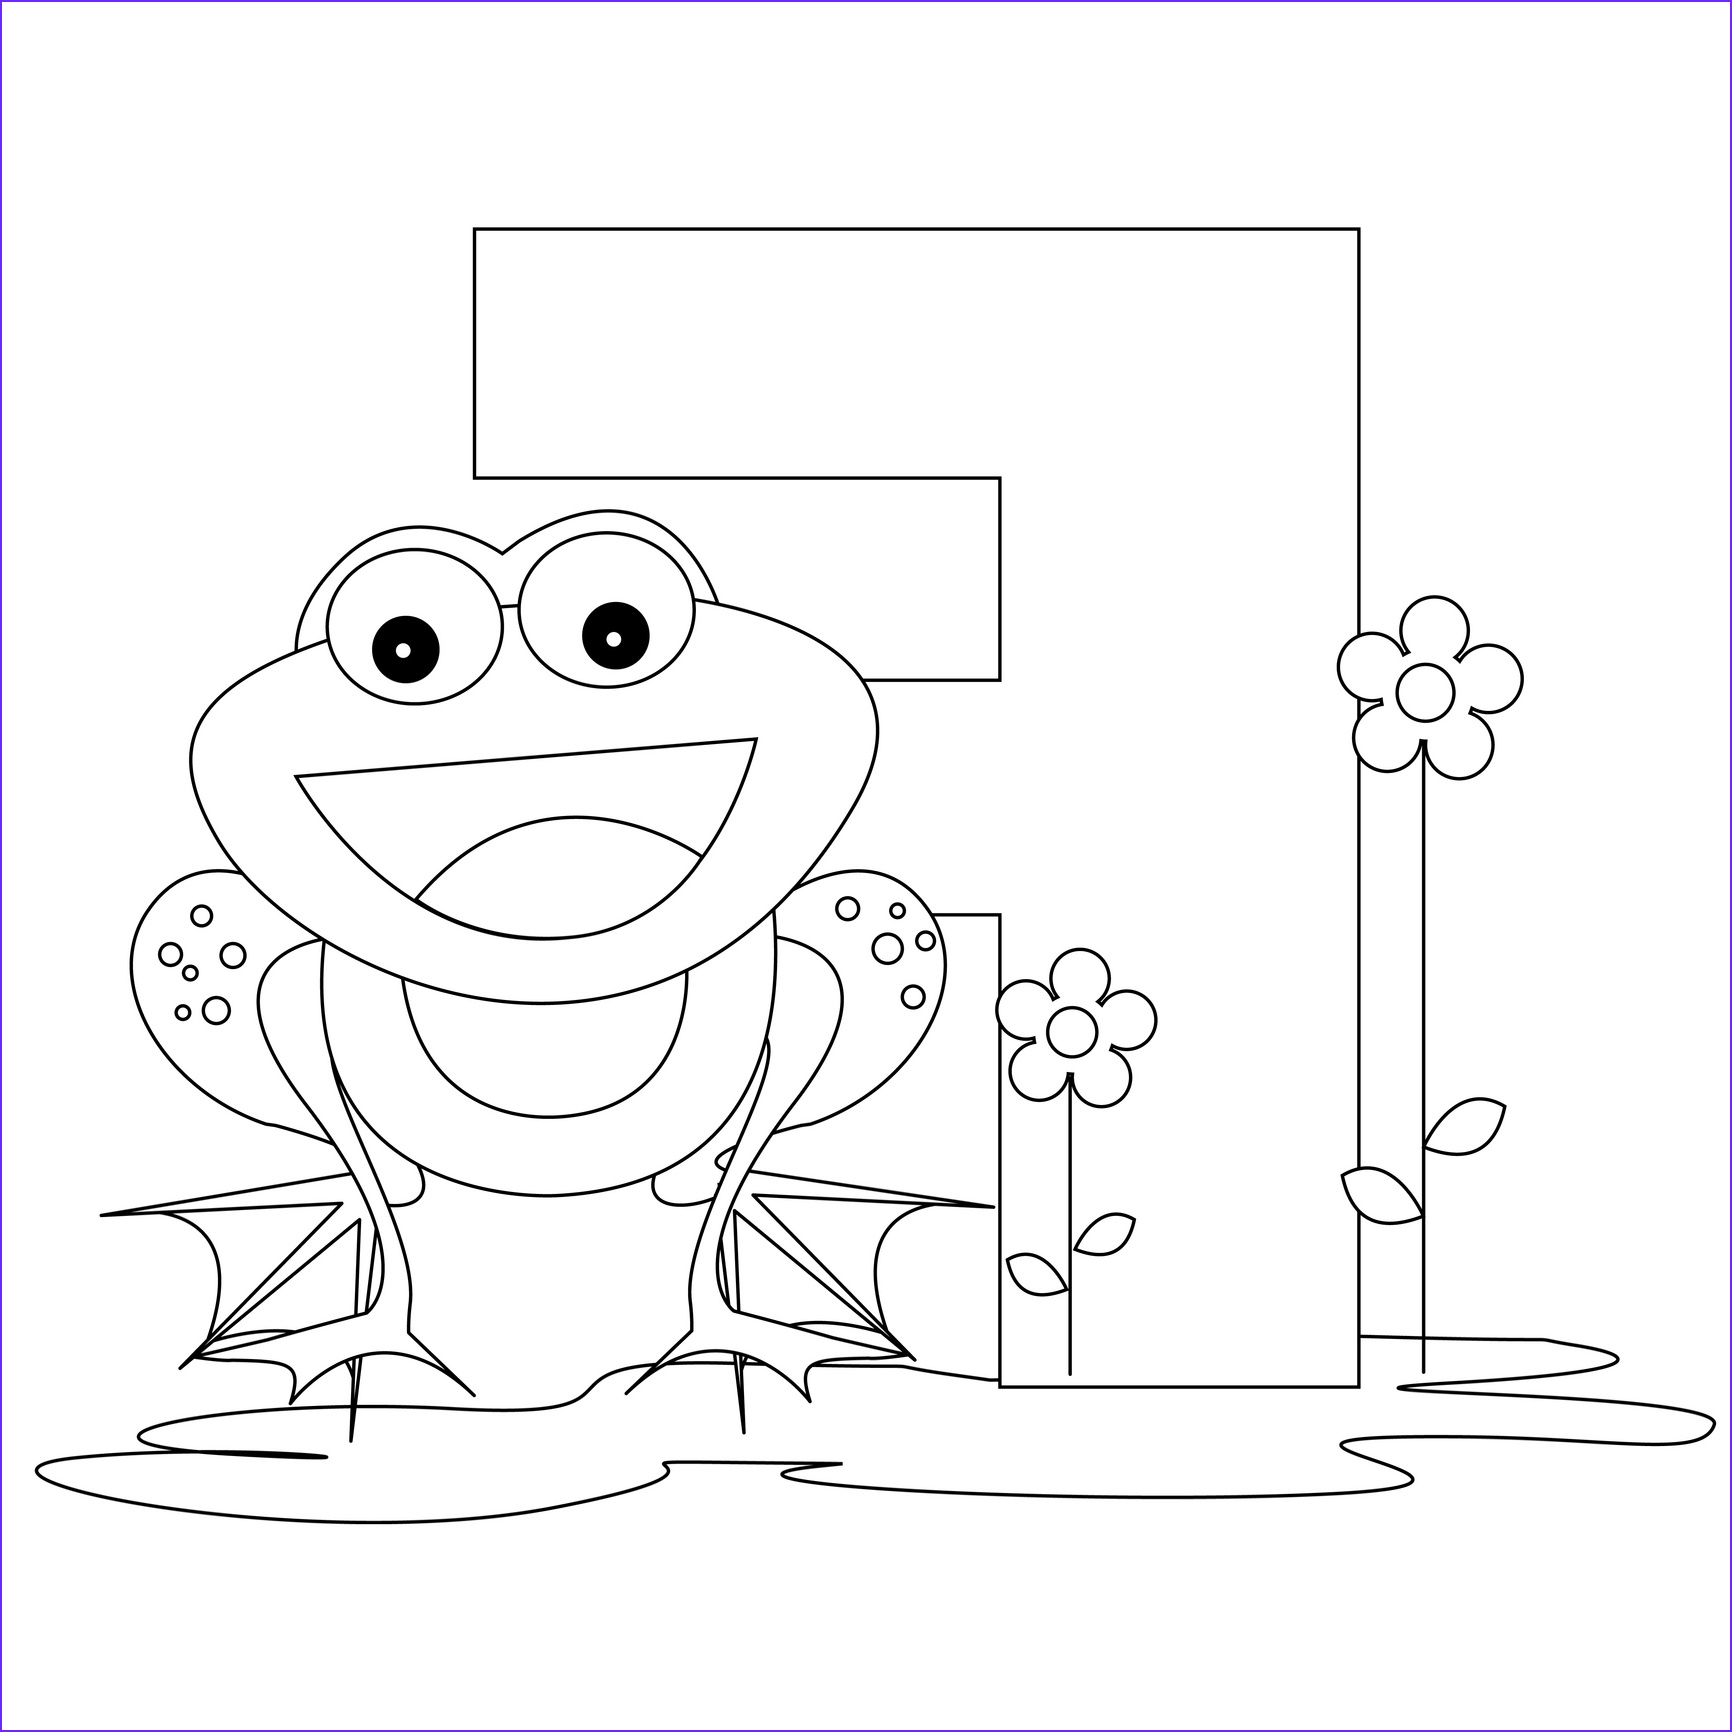 Kindergarten Coloring Sheets Luxury Photos Letter F Coloring Pages to and Print for Free